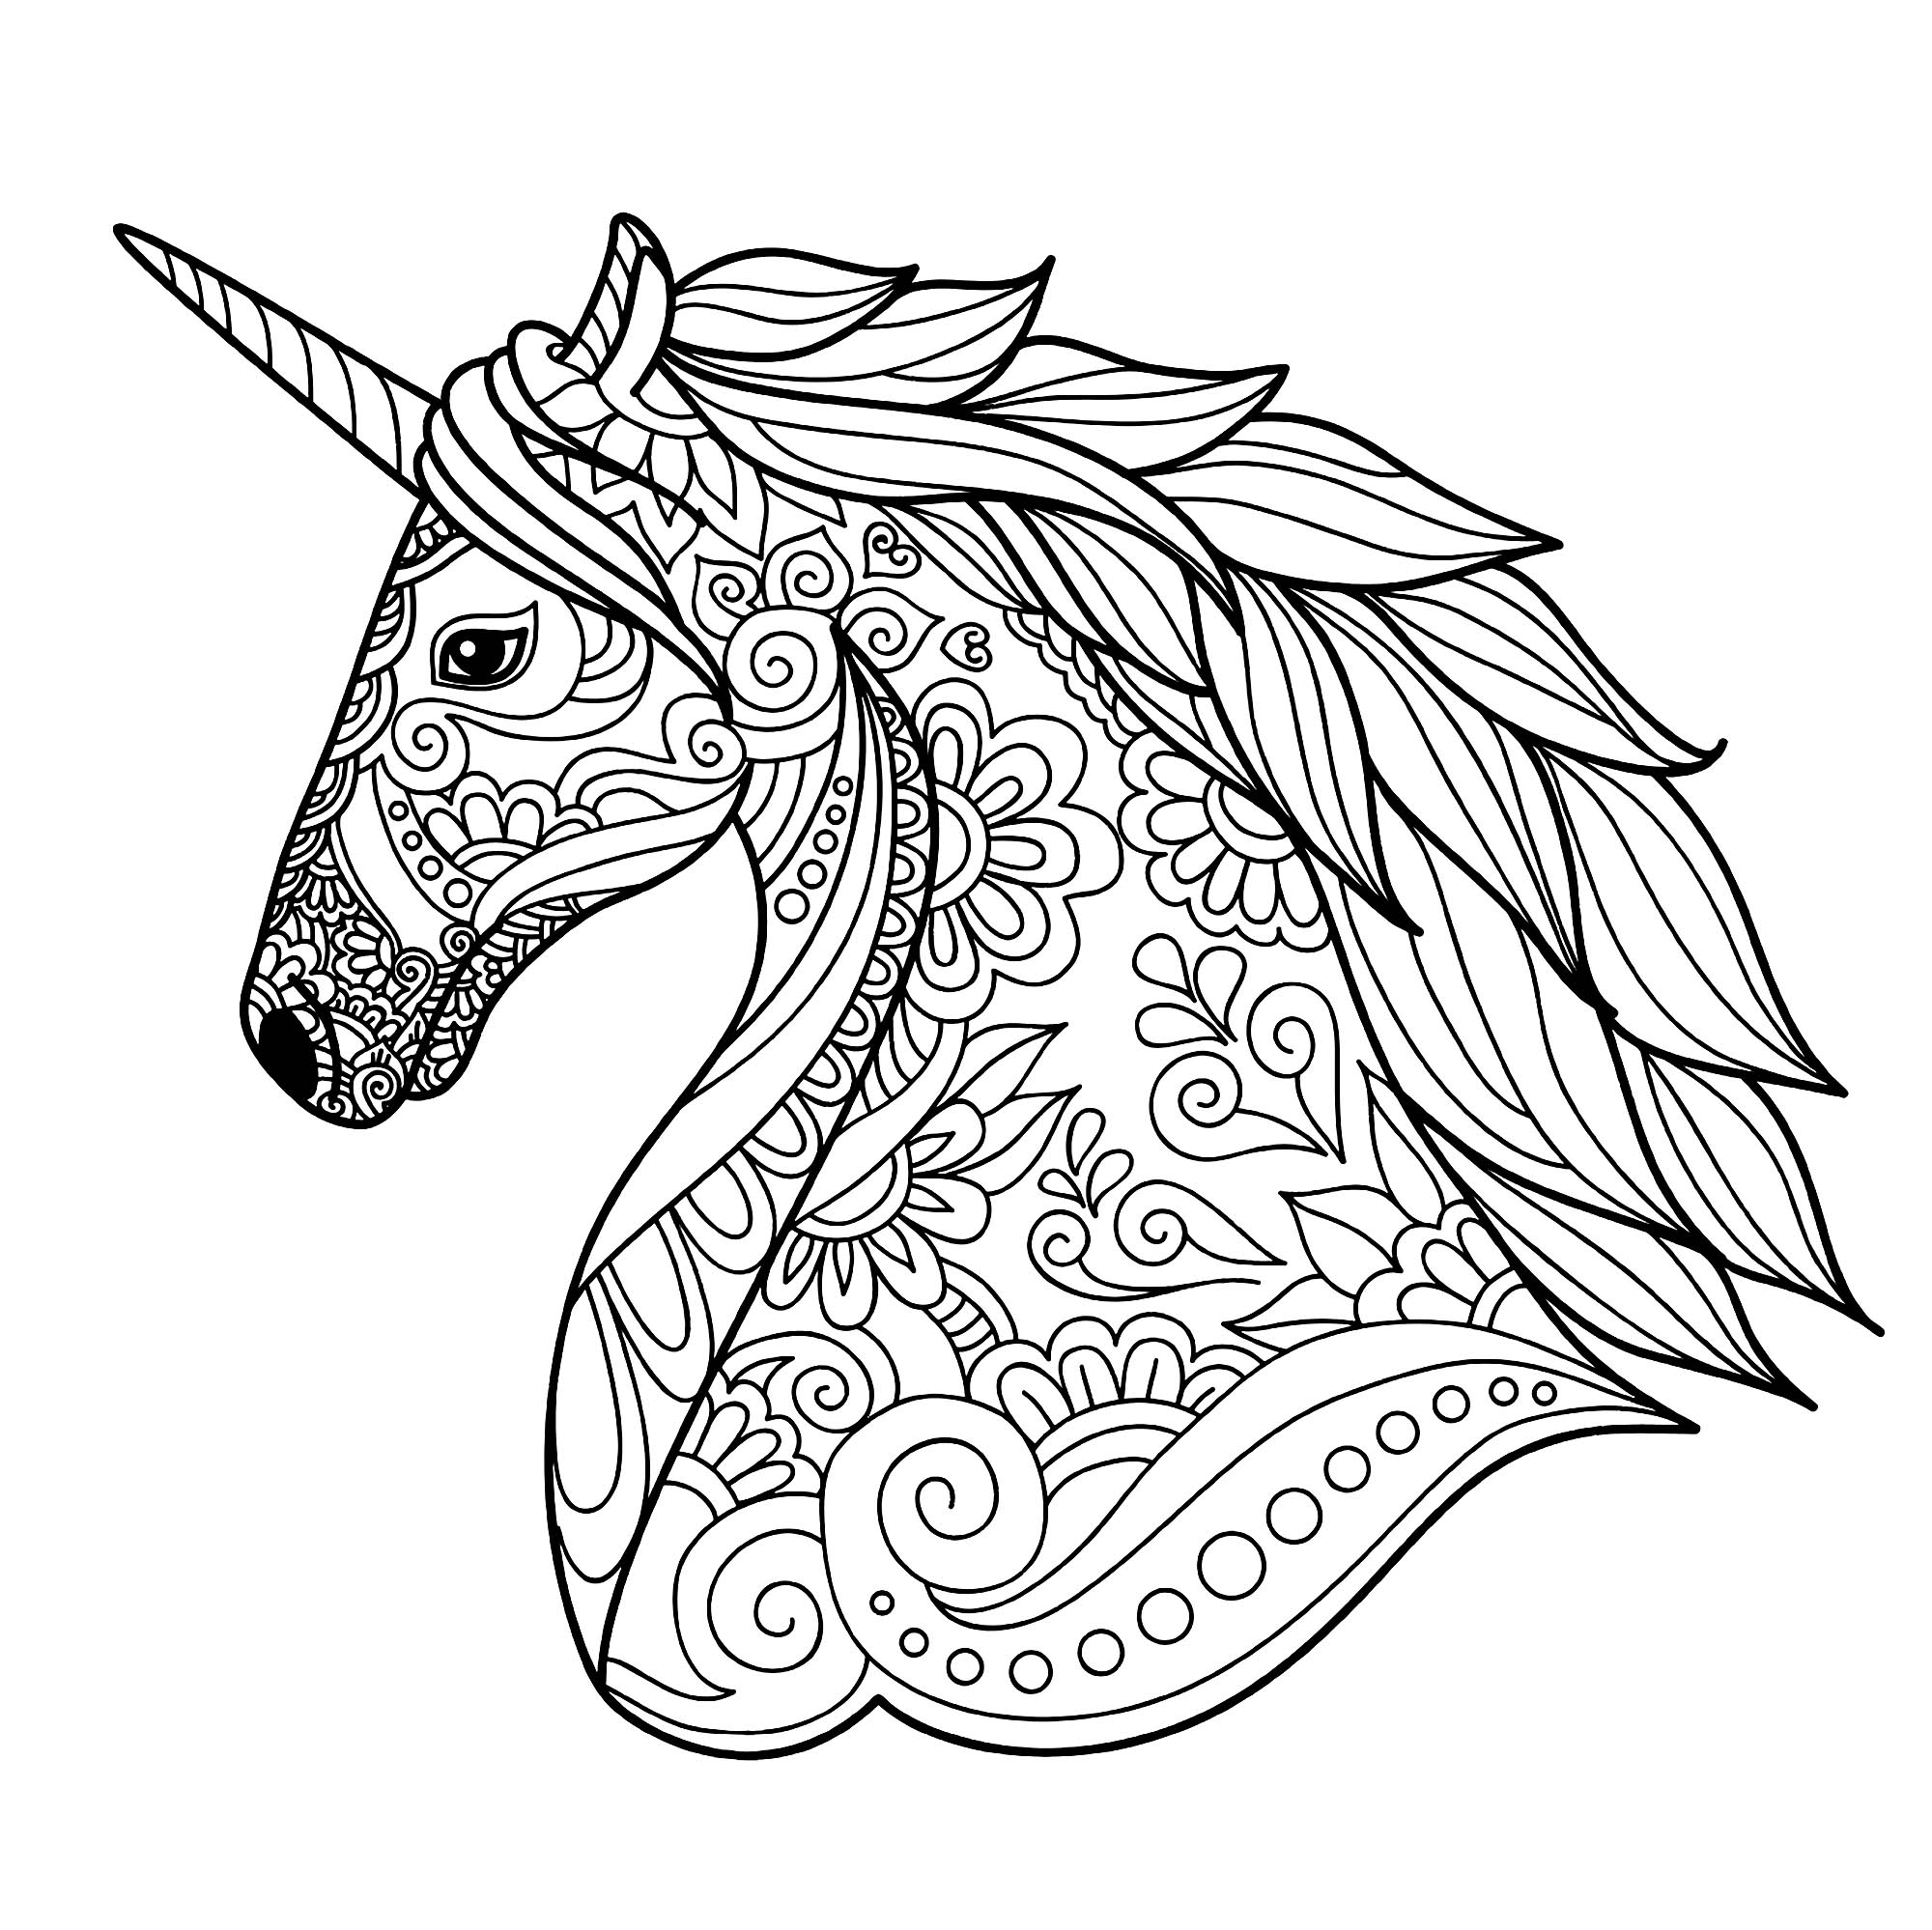 Unicorn head simple - Unicorns Adult Coloring Pages